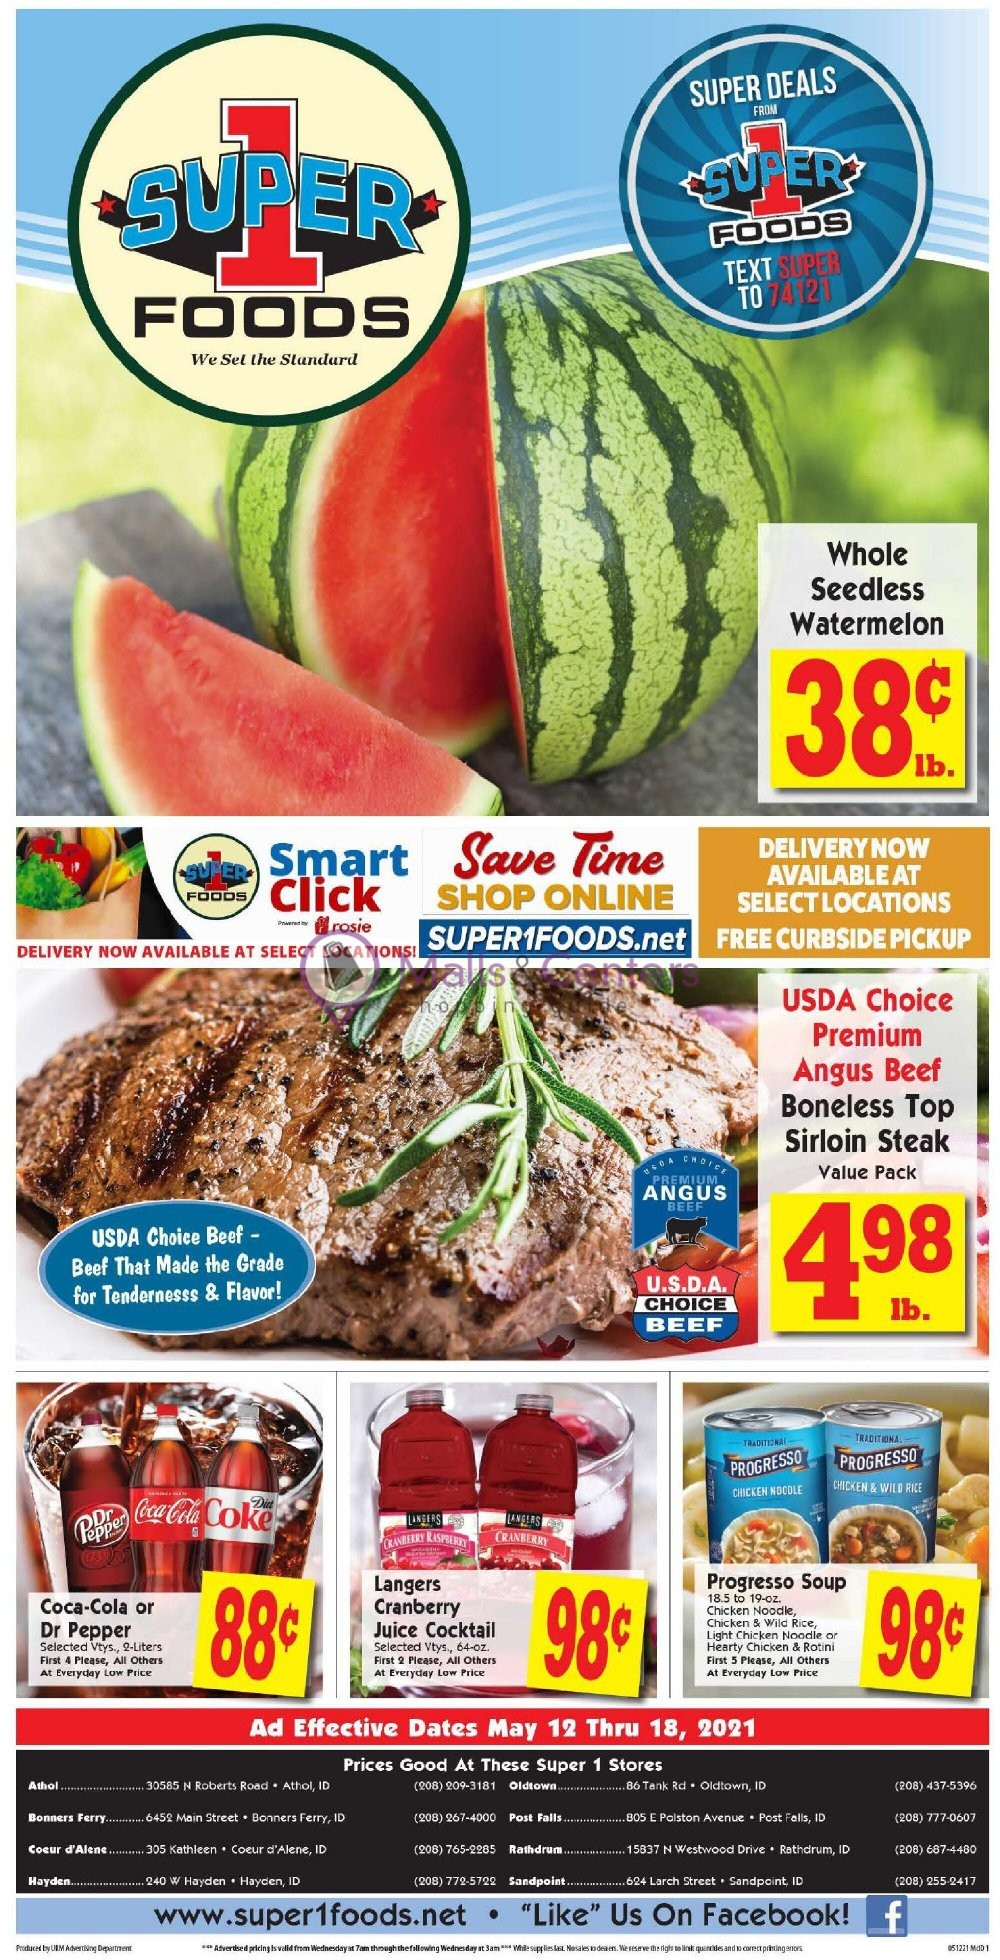 weekly ads Super 1 Foods - page 1 - mallscenters.com